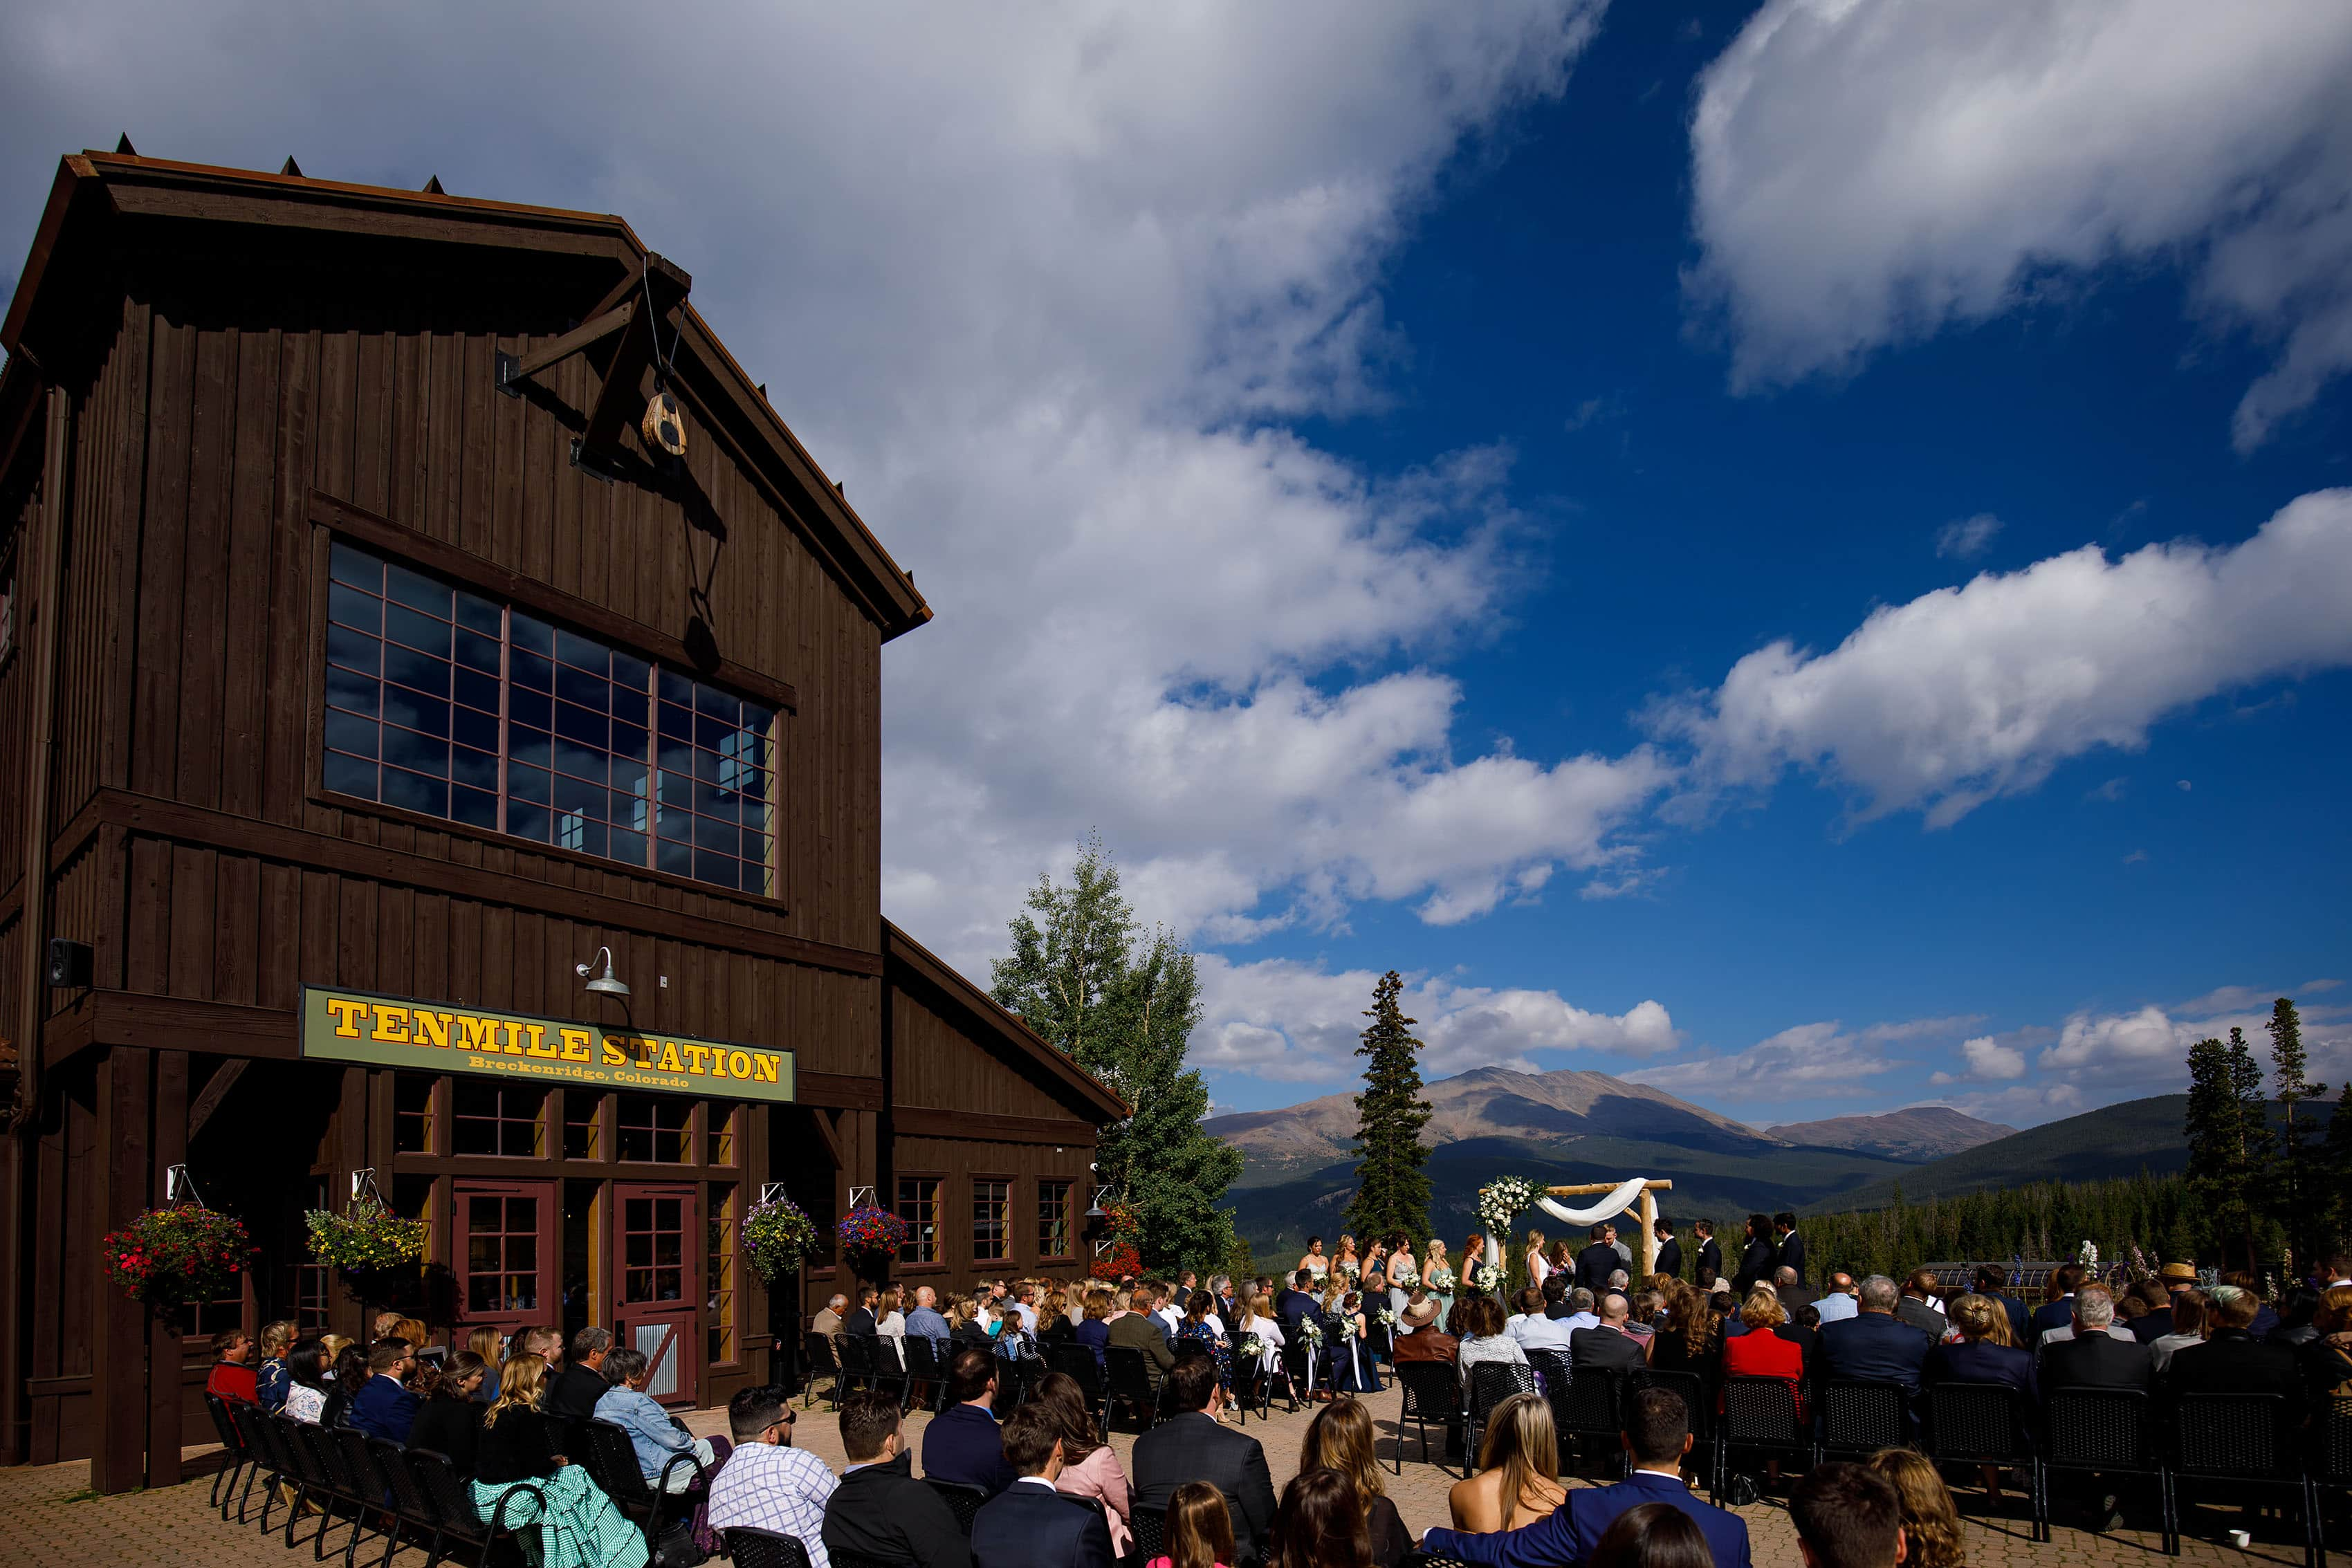 A general view of a TenMile Station wedding ceremony